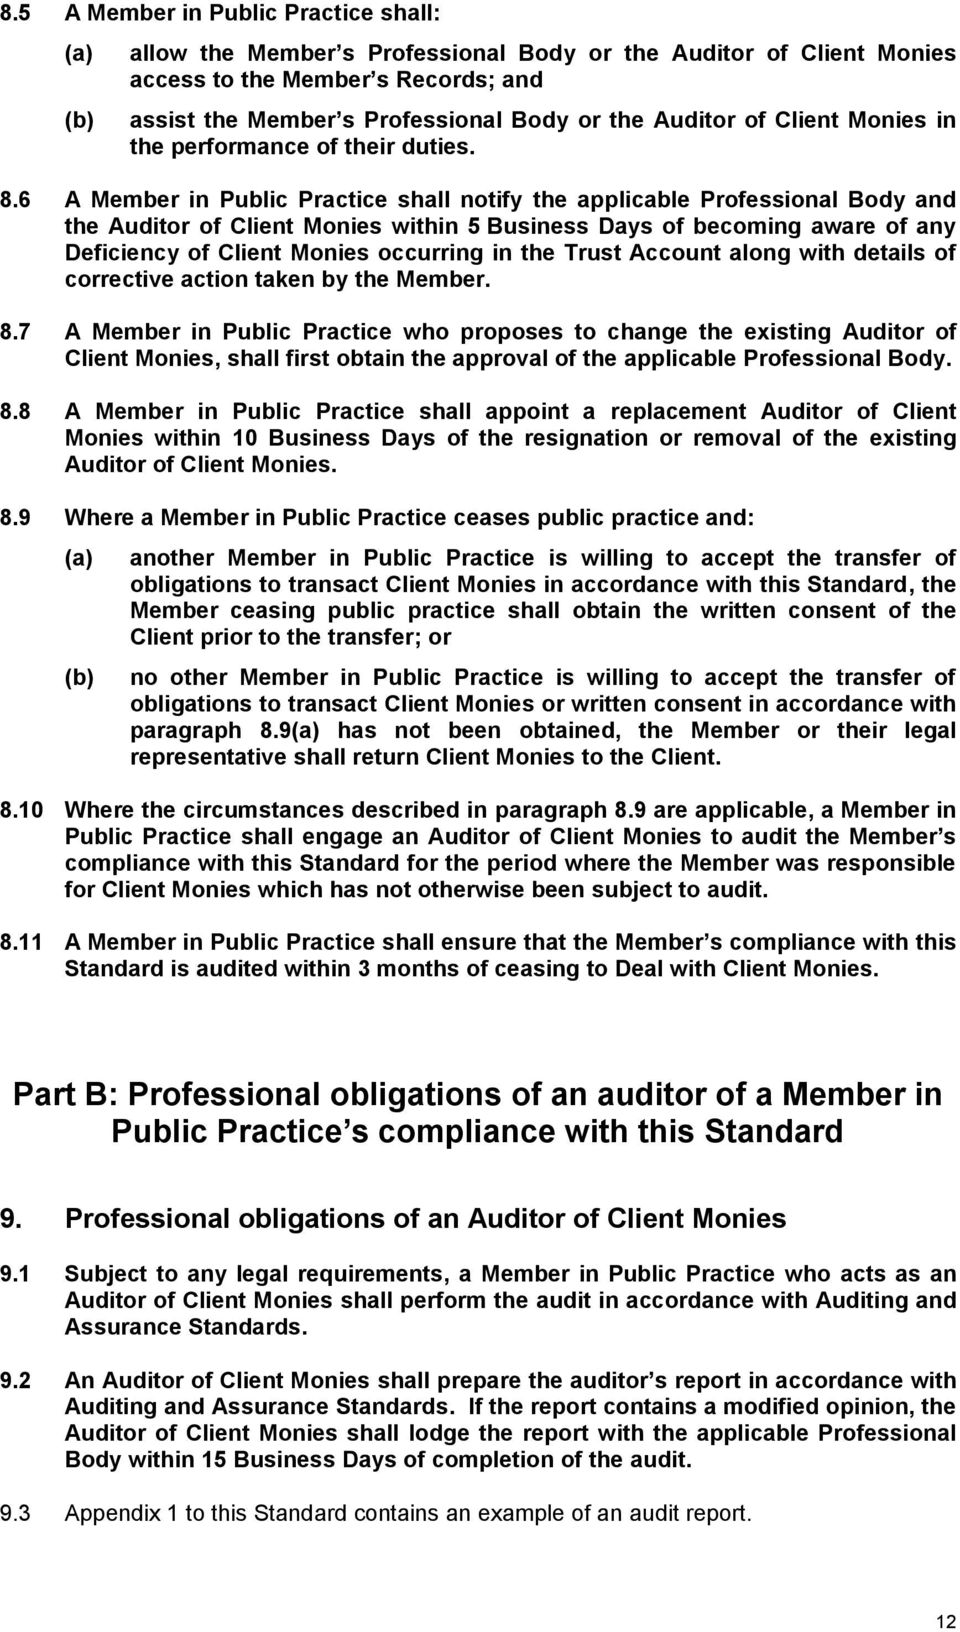 6 A Member in Public Practice shall notify the applicable Professional Body and the Auditor of Client Monies within 5 Business Days of becoming aware of any Deficiency of Client Monies occurring in